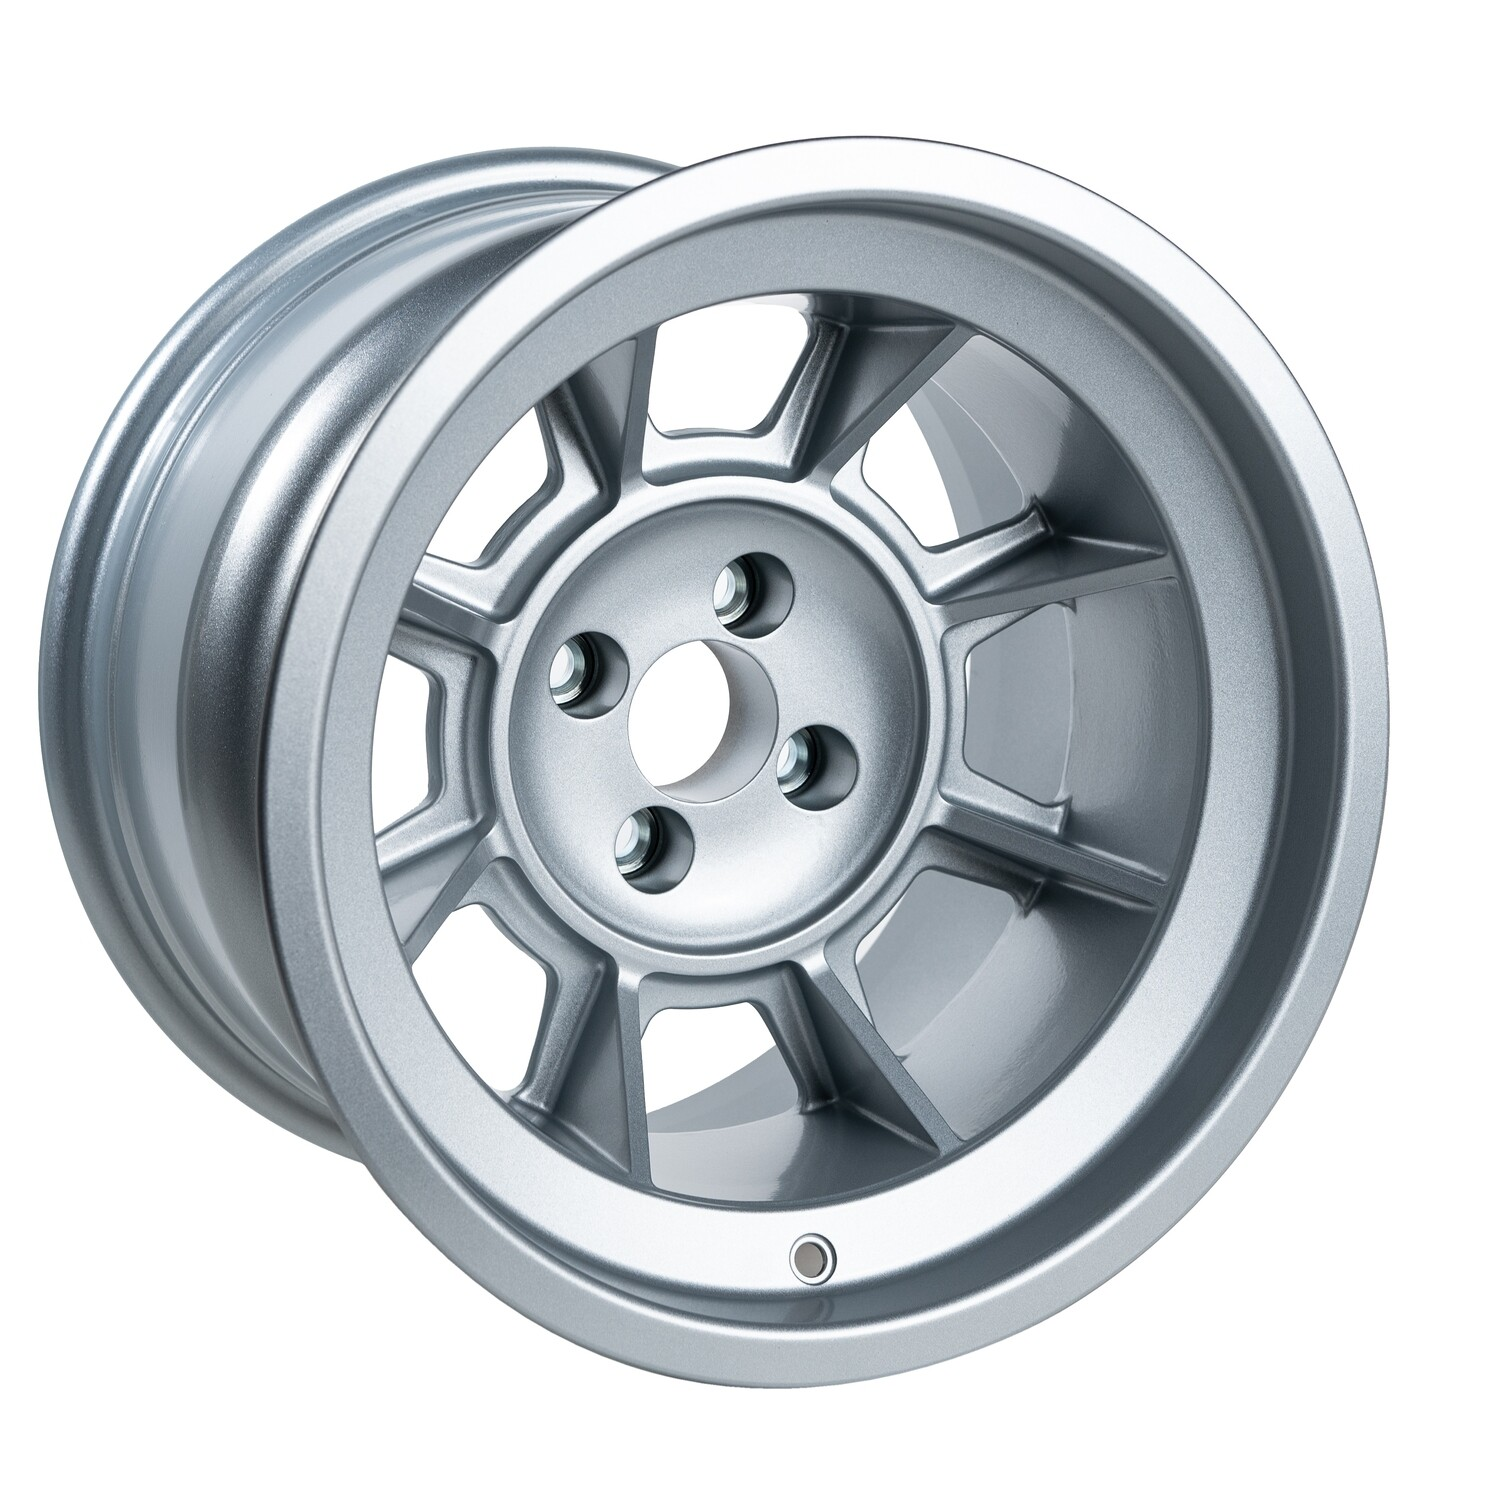 PAG1510F Satin Silver 15 x 10